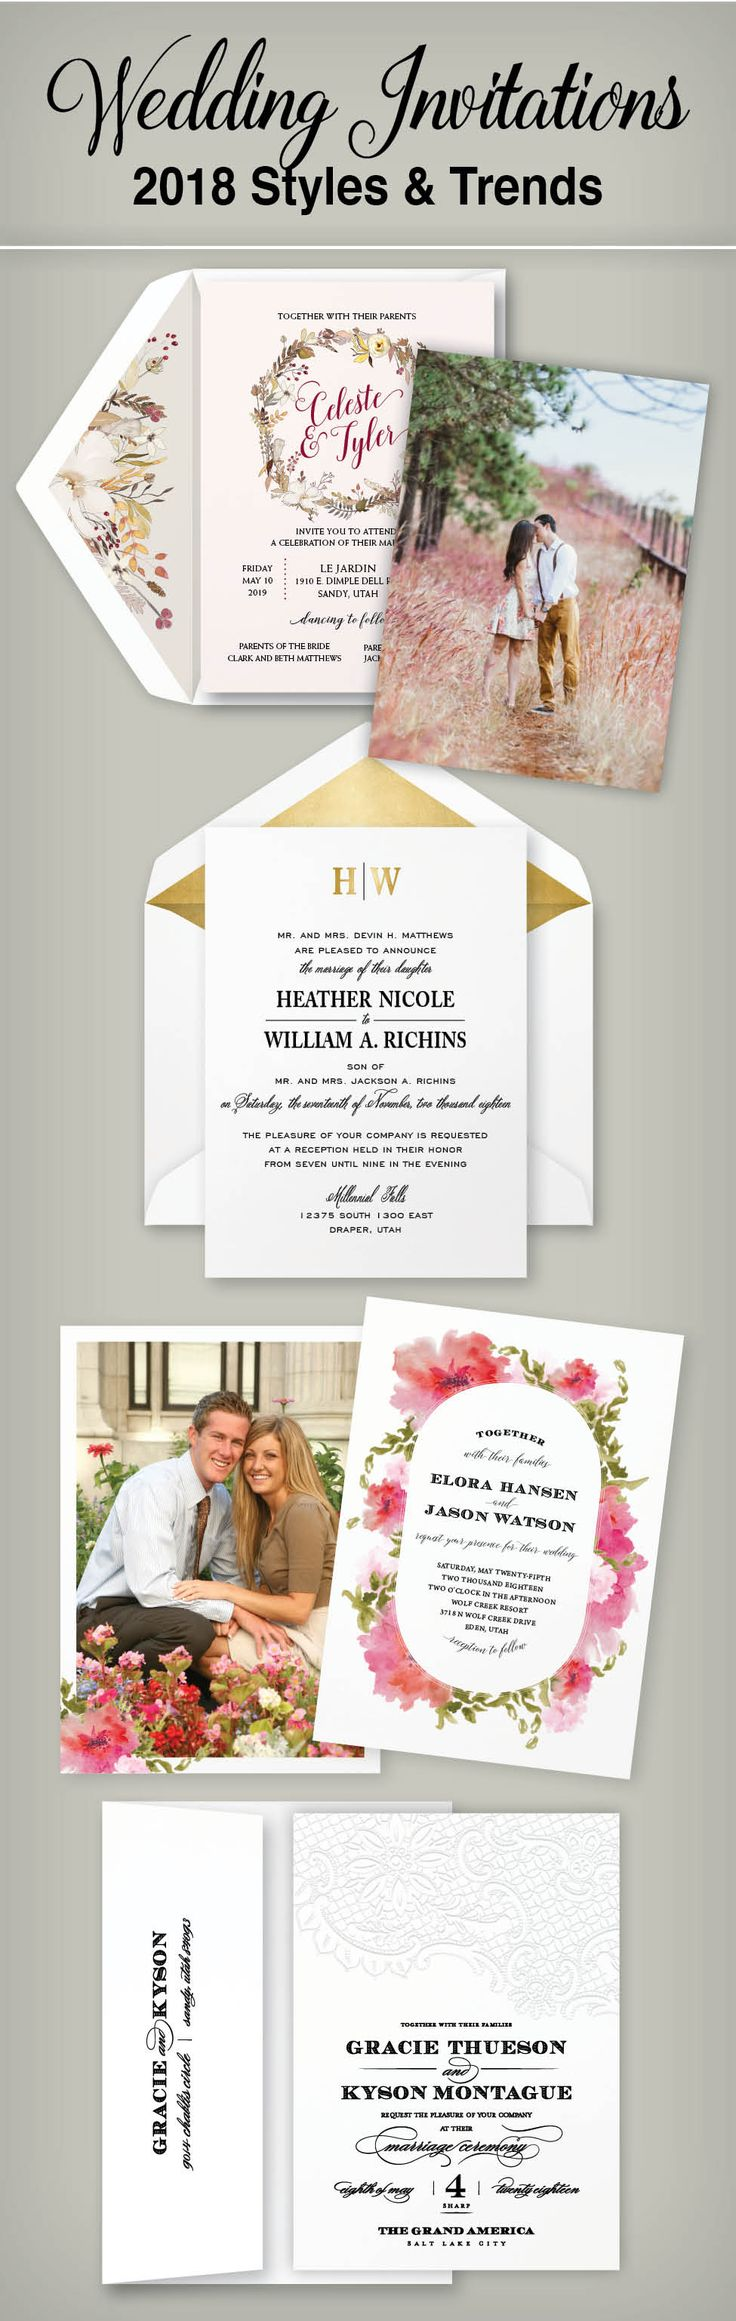 12 best Wedding Invitation Ideas images on Pinterest | Invitation ...